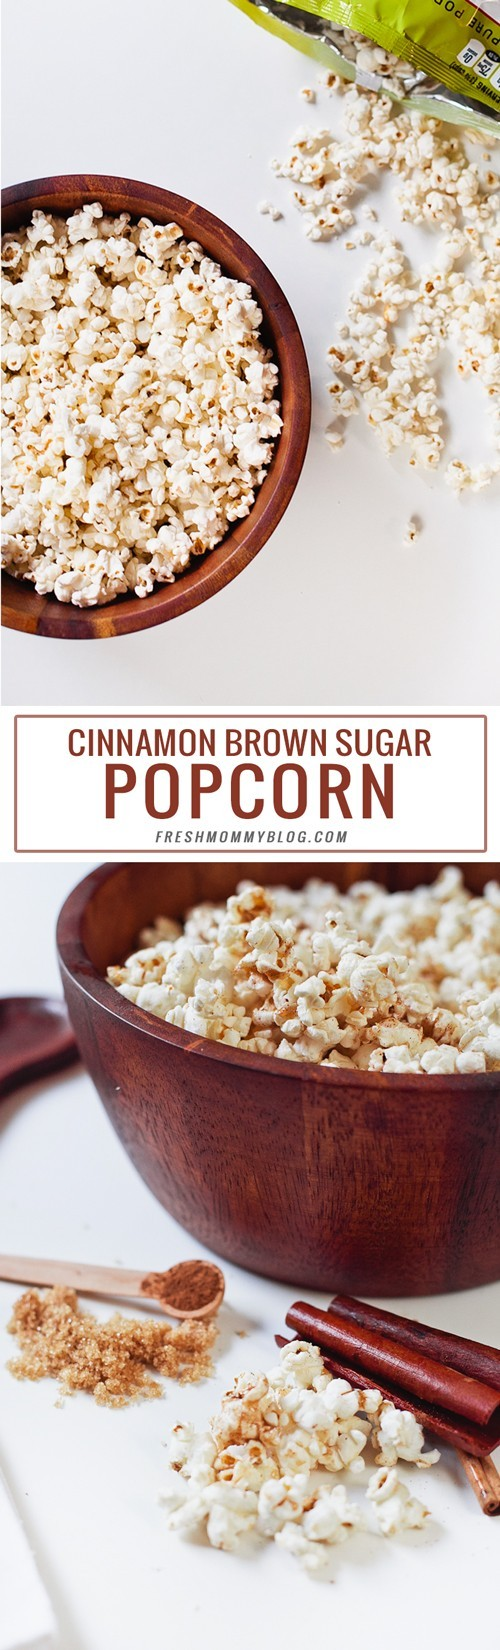 Cinnamon Brown Sugar Popcorn, the perfect low calorie recipe for National Popcorn Day